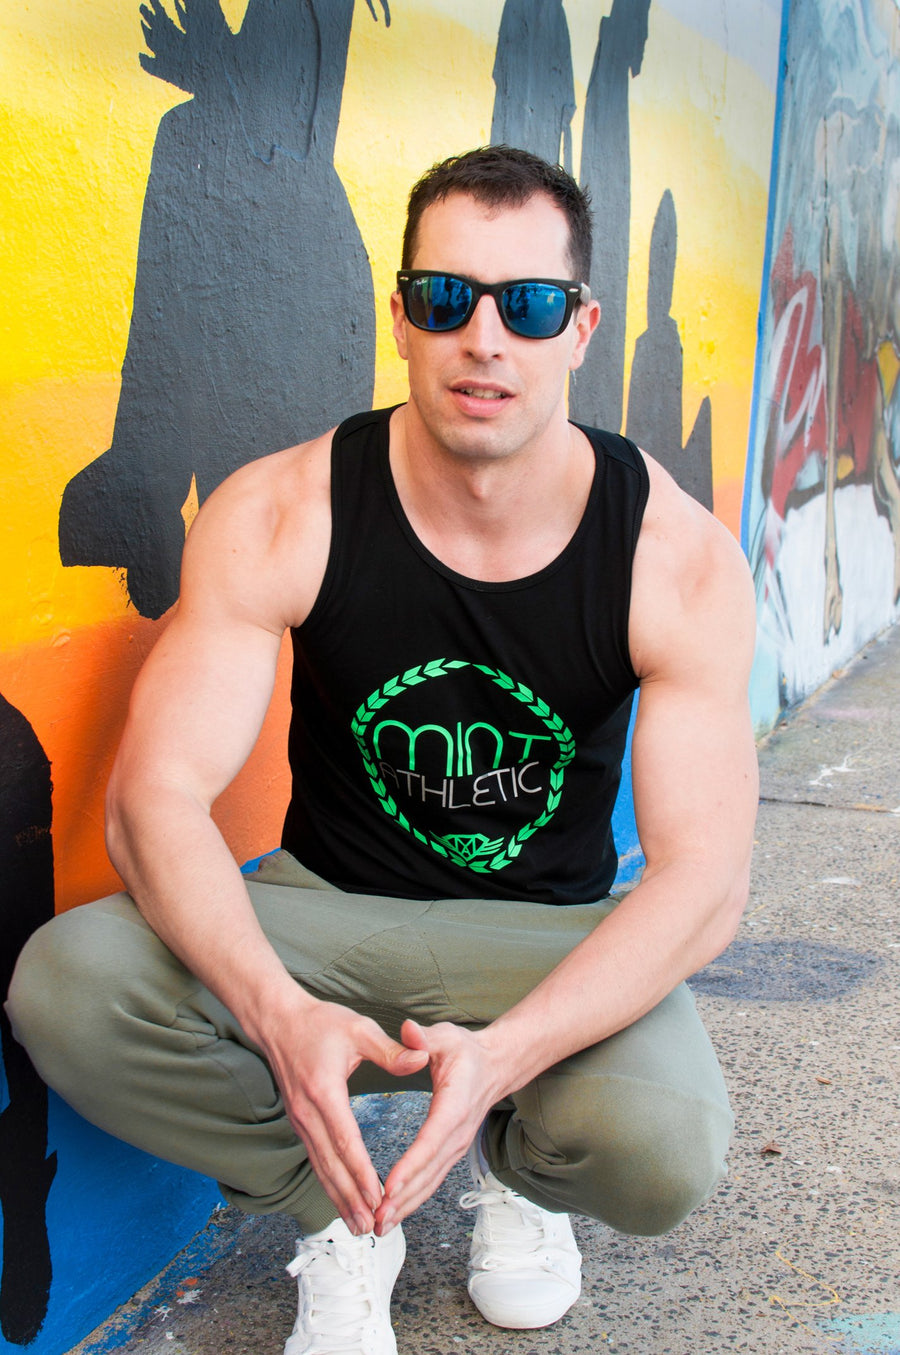 Black Classic Tank Top - Mint Athletic Apparel